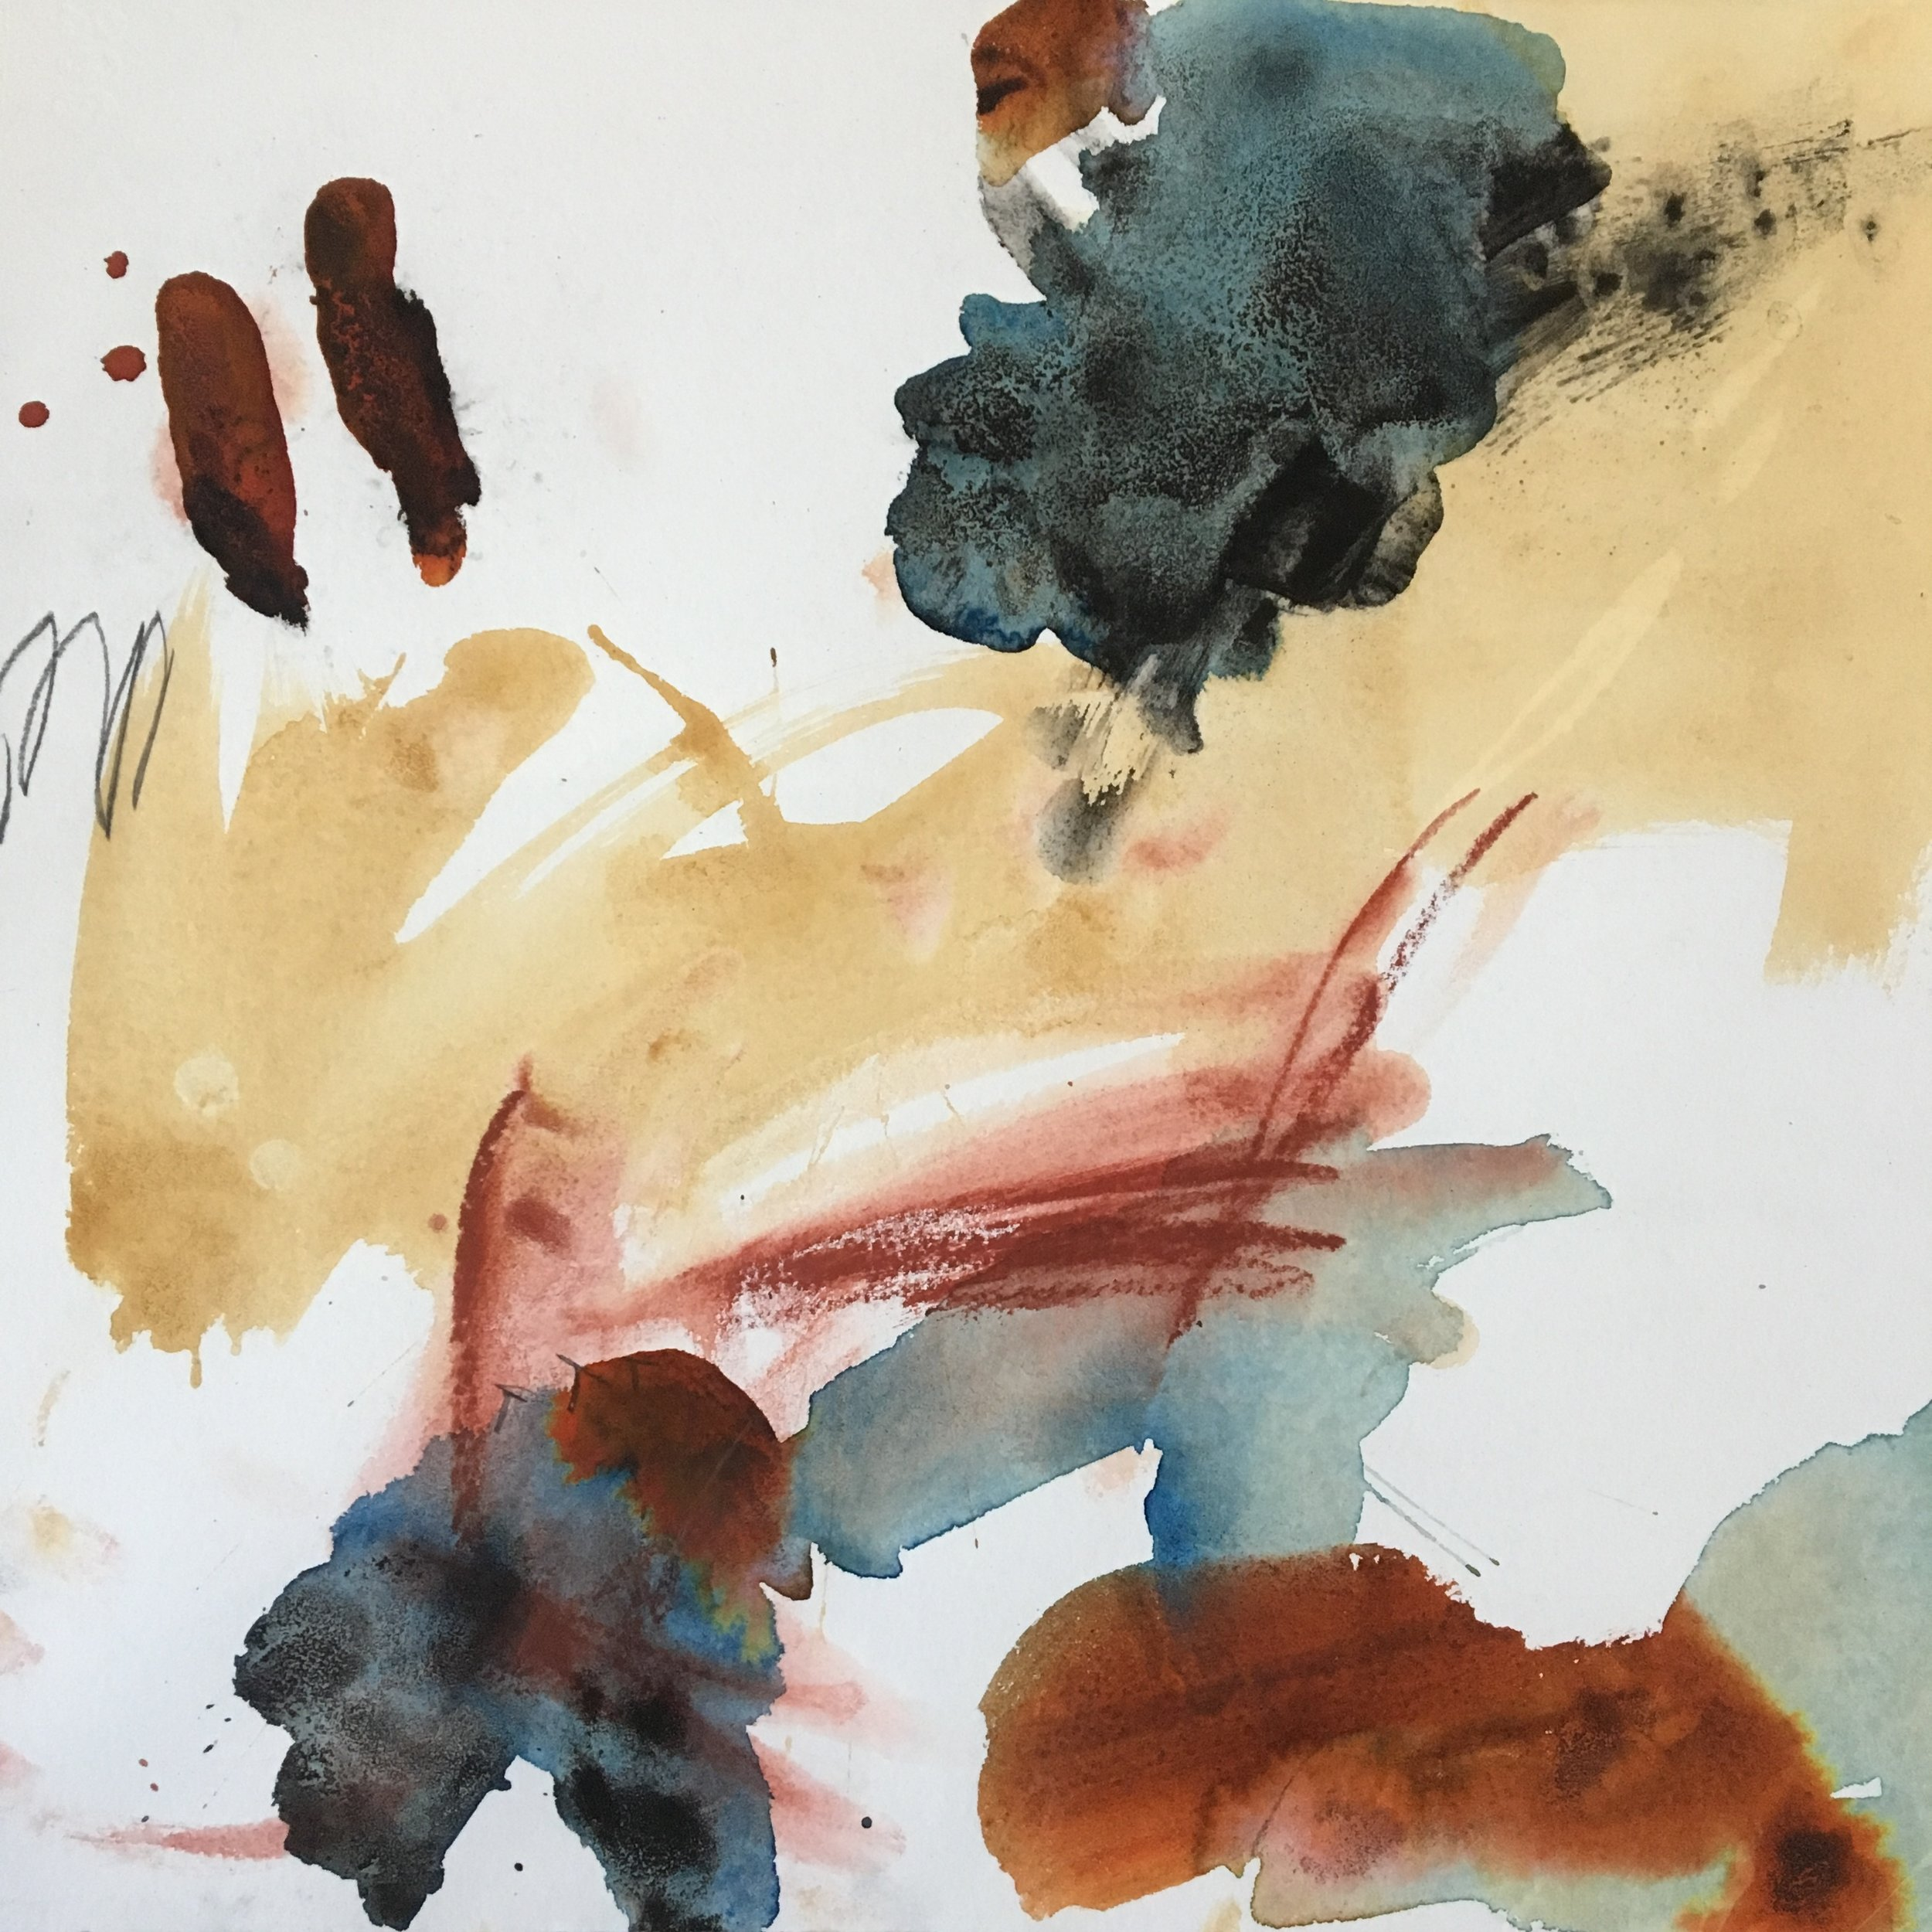 MICHAEL RICH  The Wild Coast I,  2009 mixed media on paper 15 x 16 1/2 in.